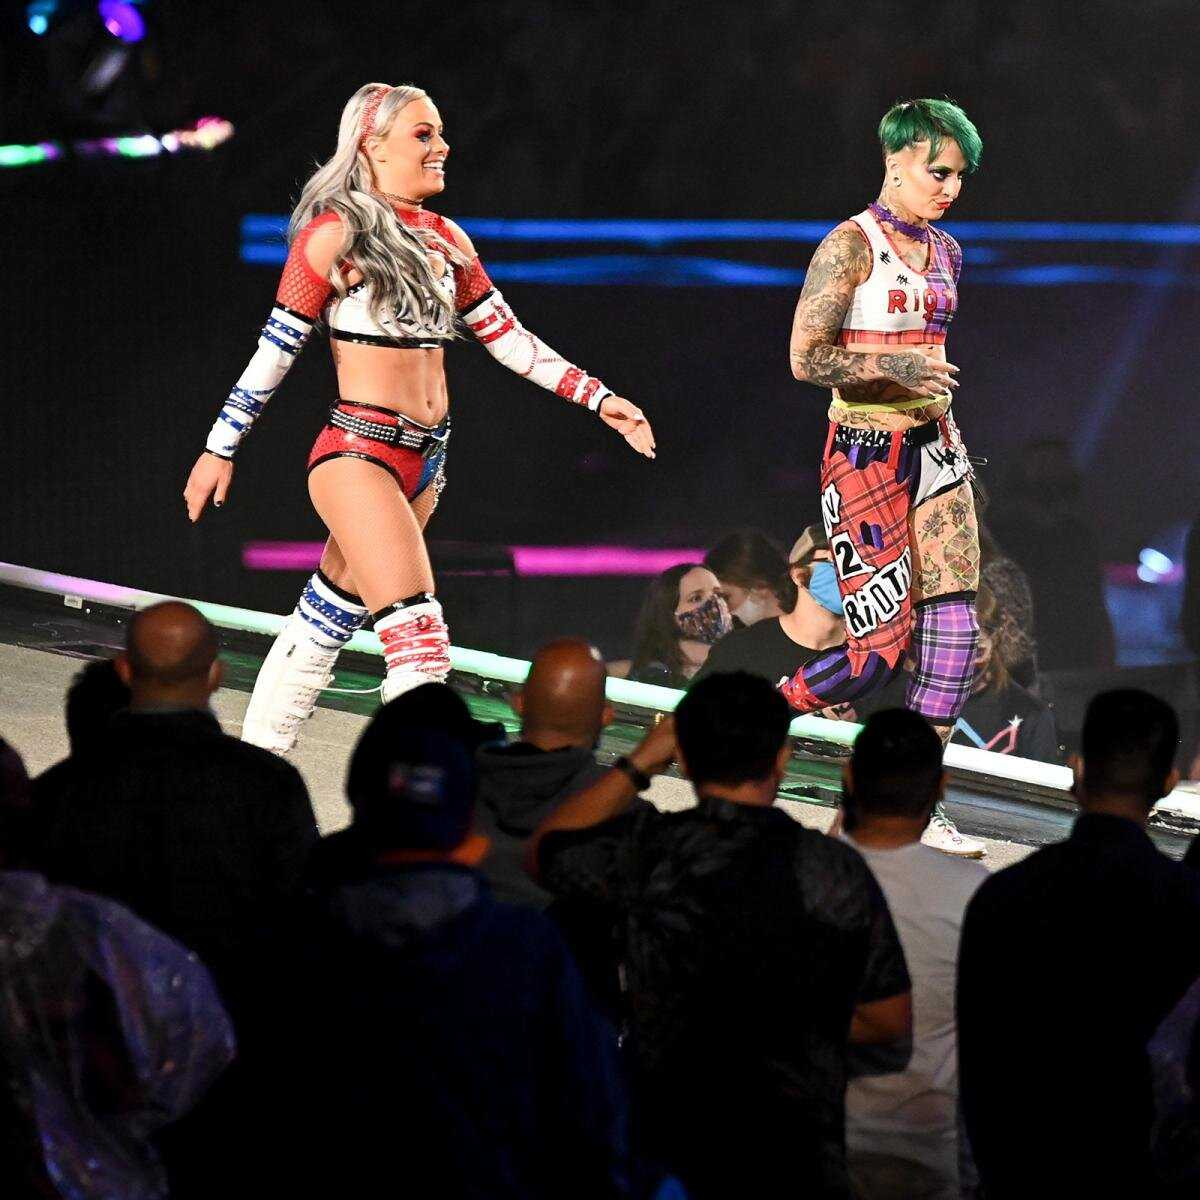 WWE Superstars klär sig ut som Harley Quinn och The Joker på WrestleMania 37